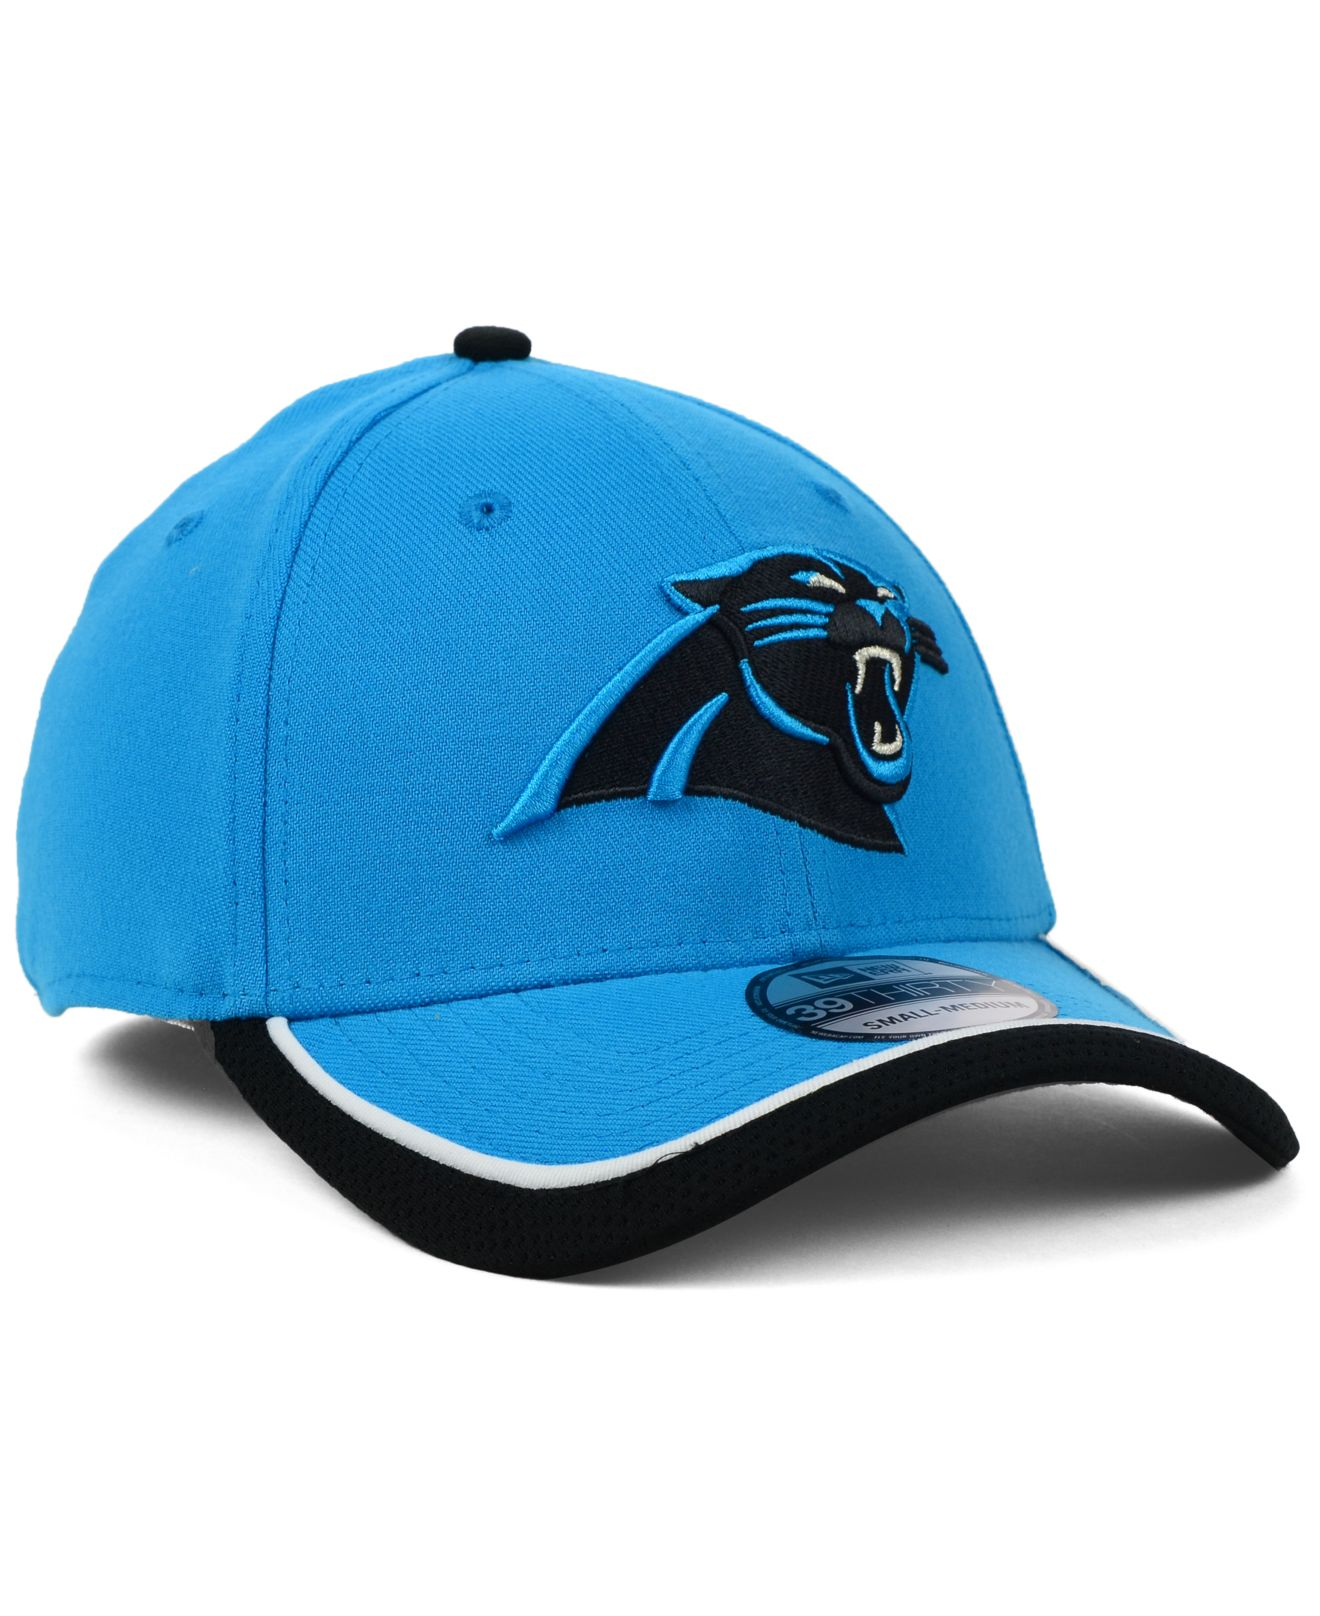 ... discount lyst ktz carolina panthers on field rev 39thirty cap in blue  for men be466 d8573 469d7c71f